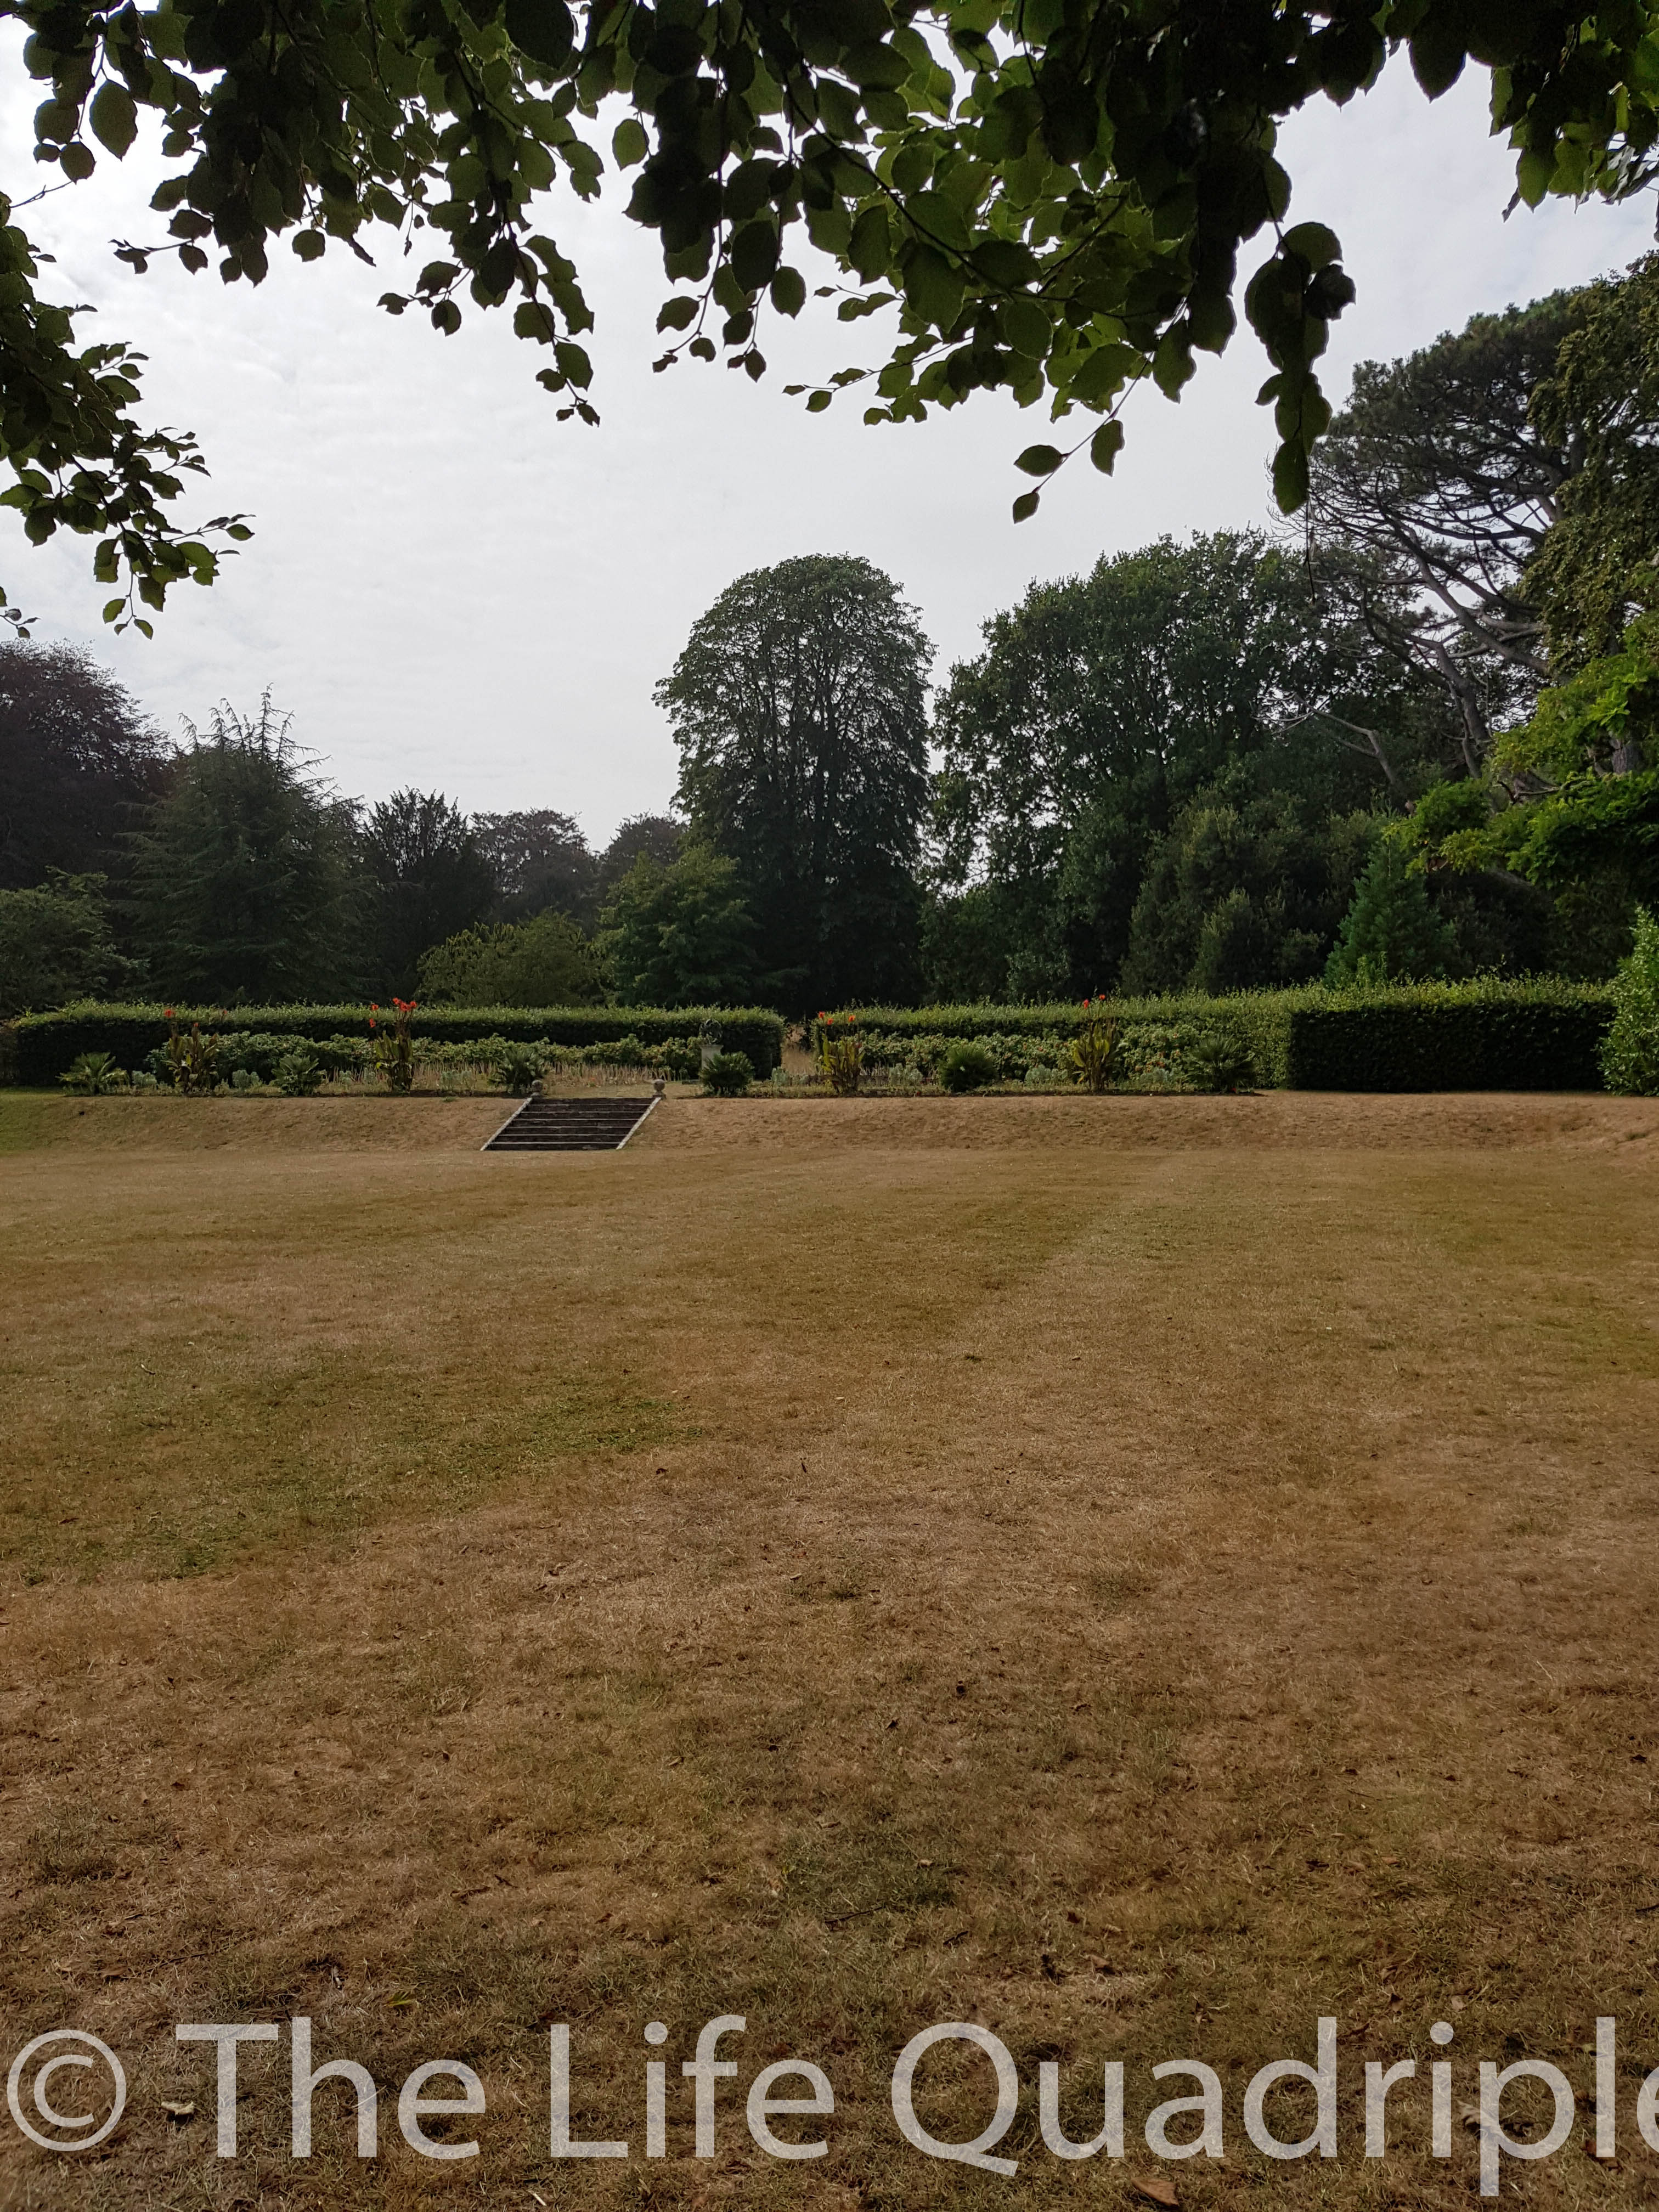 A large flat grassy area with hedges and trees in the background